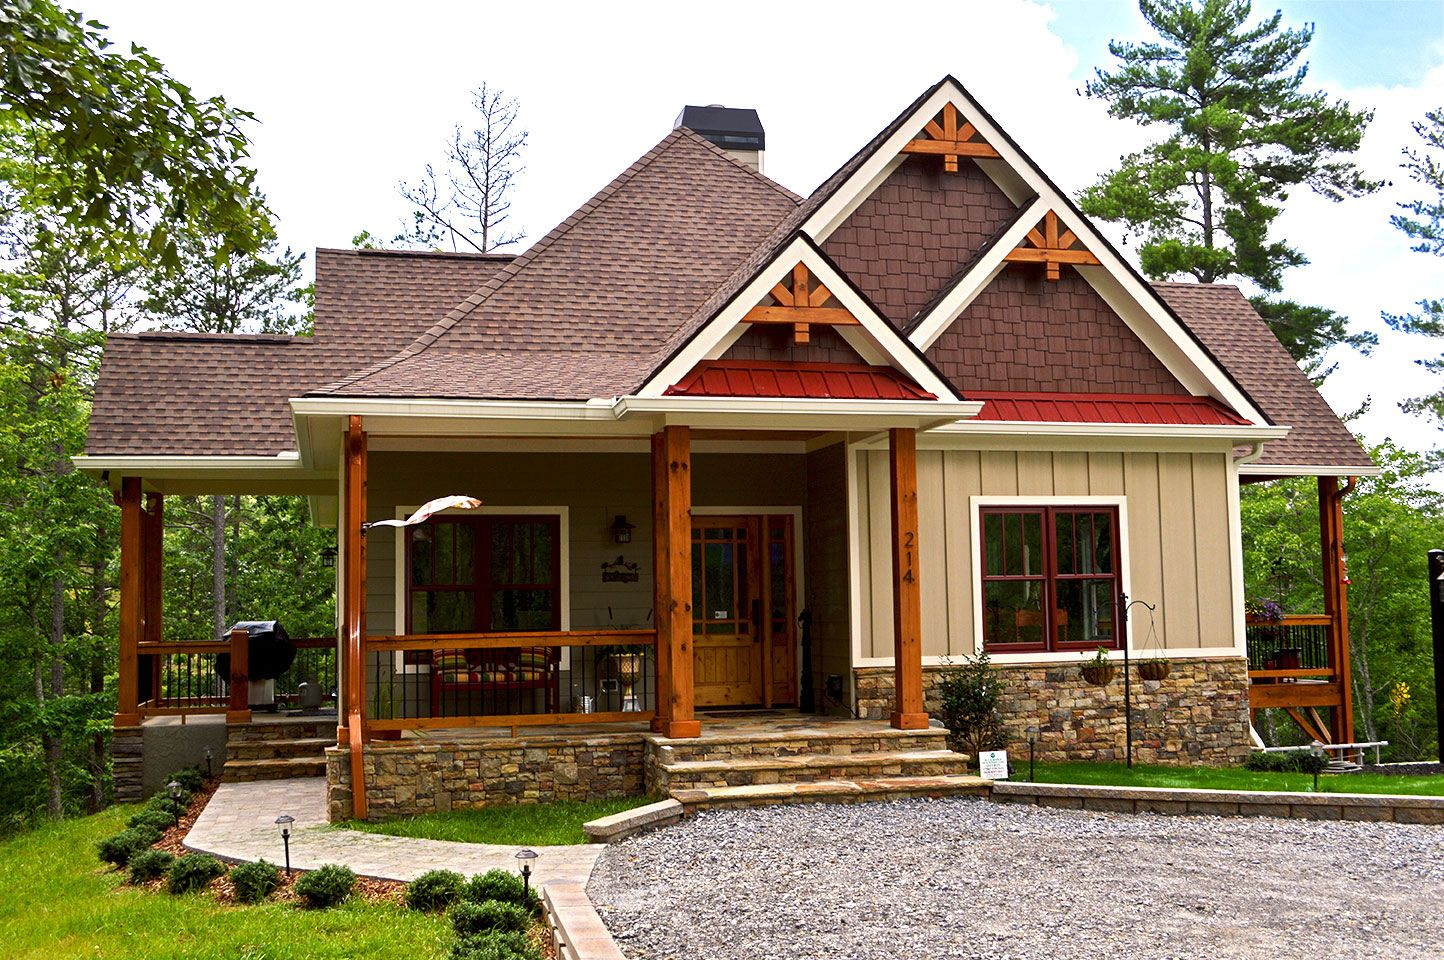 Small Rustic Lake Cabin Designed And Built By Max Fulbright Www Maxhouseplans Com Rustic House Plans Small Lake Houses Porch House Plans